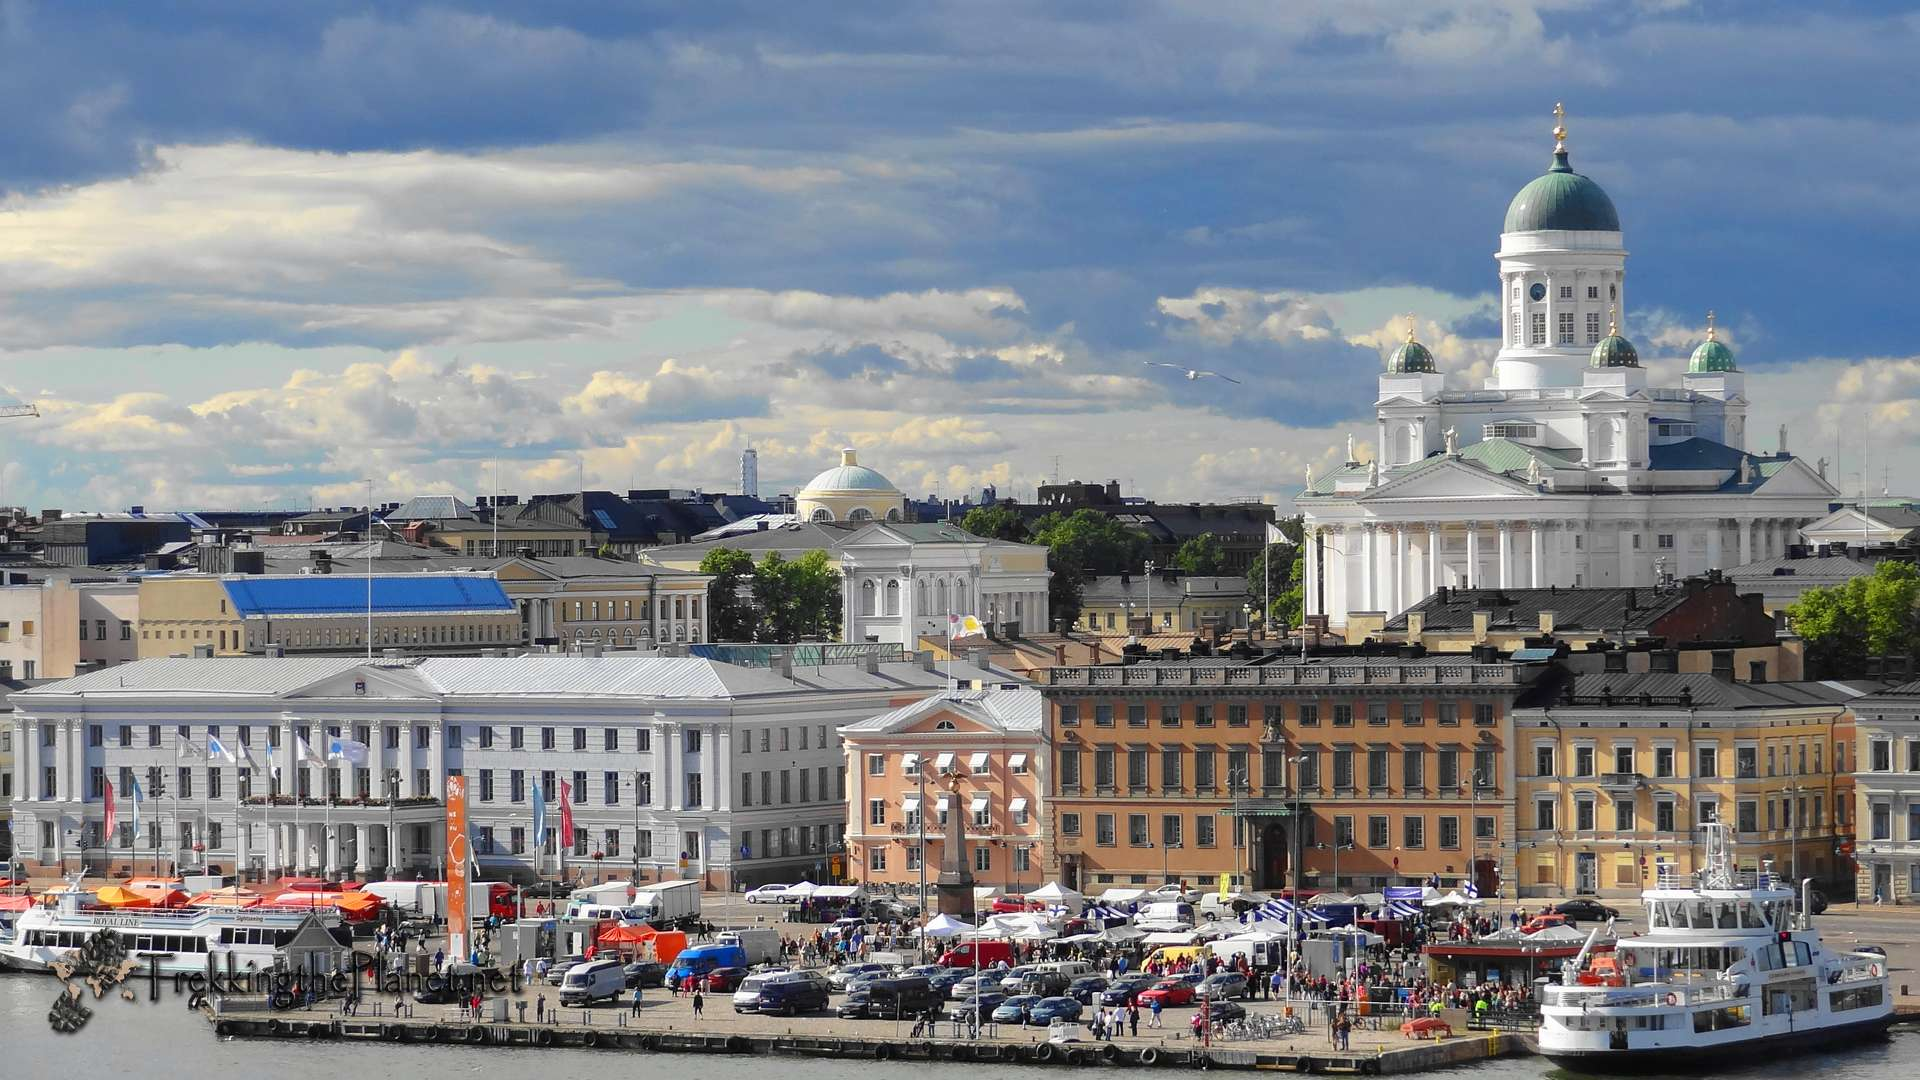 Helsinki Finland Pictures and videos and news